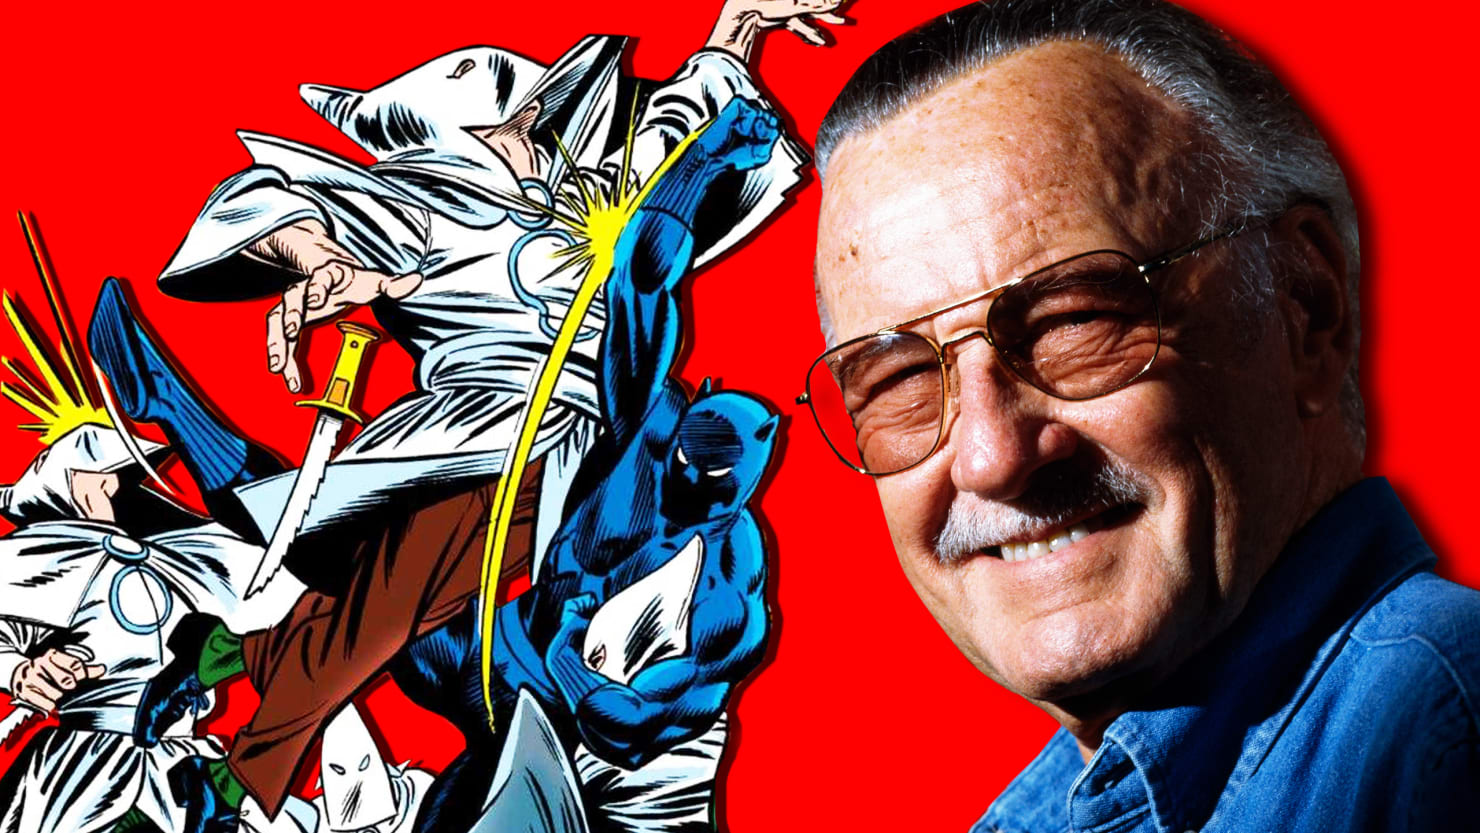 Stan Lee's Radical Fight Against Racists: 'The Only Way to Destroy Them Is to Expose Them'